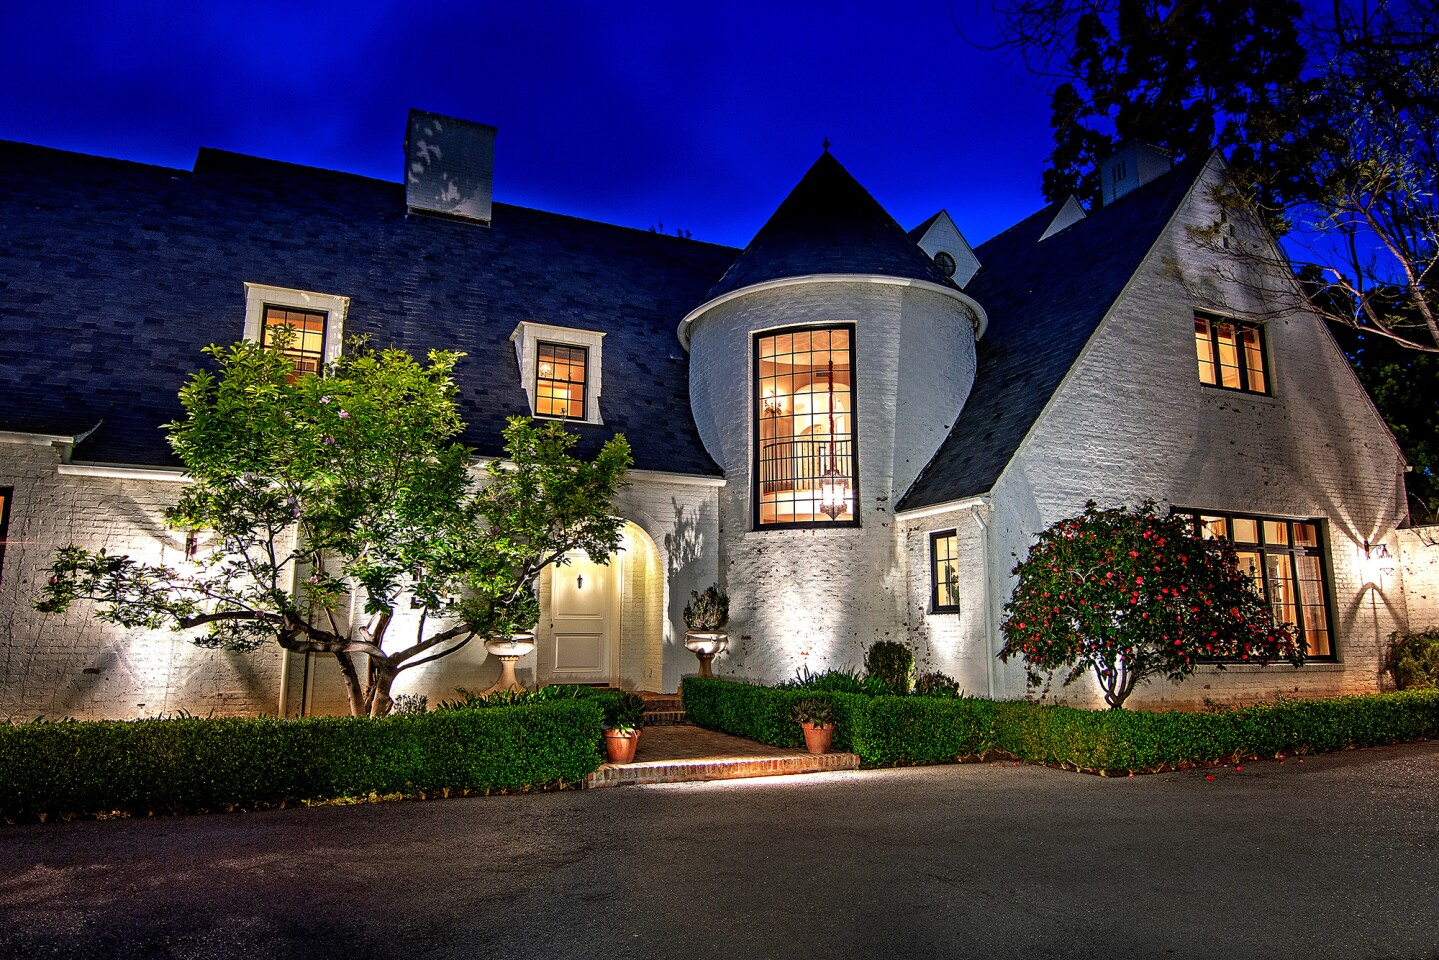 Lindsey Buckingham of Fleetwood Mac fame sold his French Normandy-inspired home in Brentwood for $28 million. The roughly 10,000-square-foot house was custom built for the Fleetwood Mac rocker and his wife, interior designer Kirsten Buckingham. Set on more than an acre, the double-lot property includes a tennis court, a gym, a guest house and a screening room.